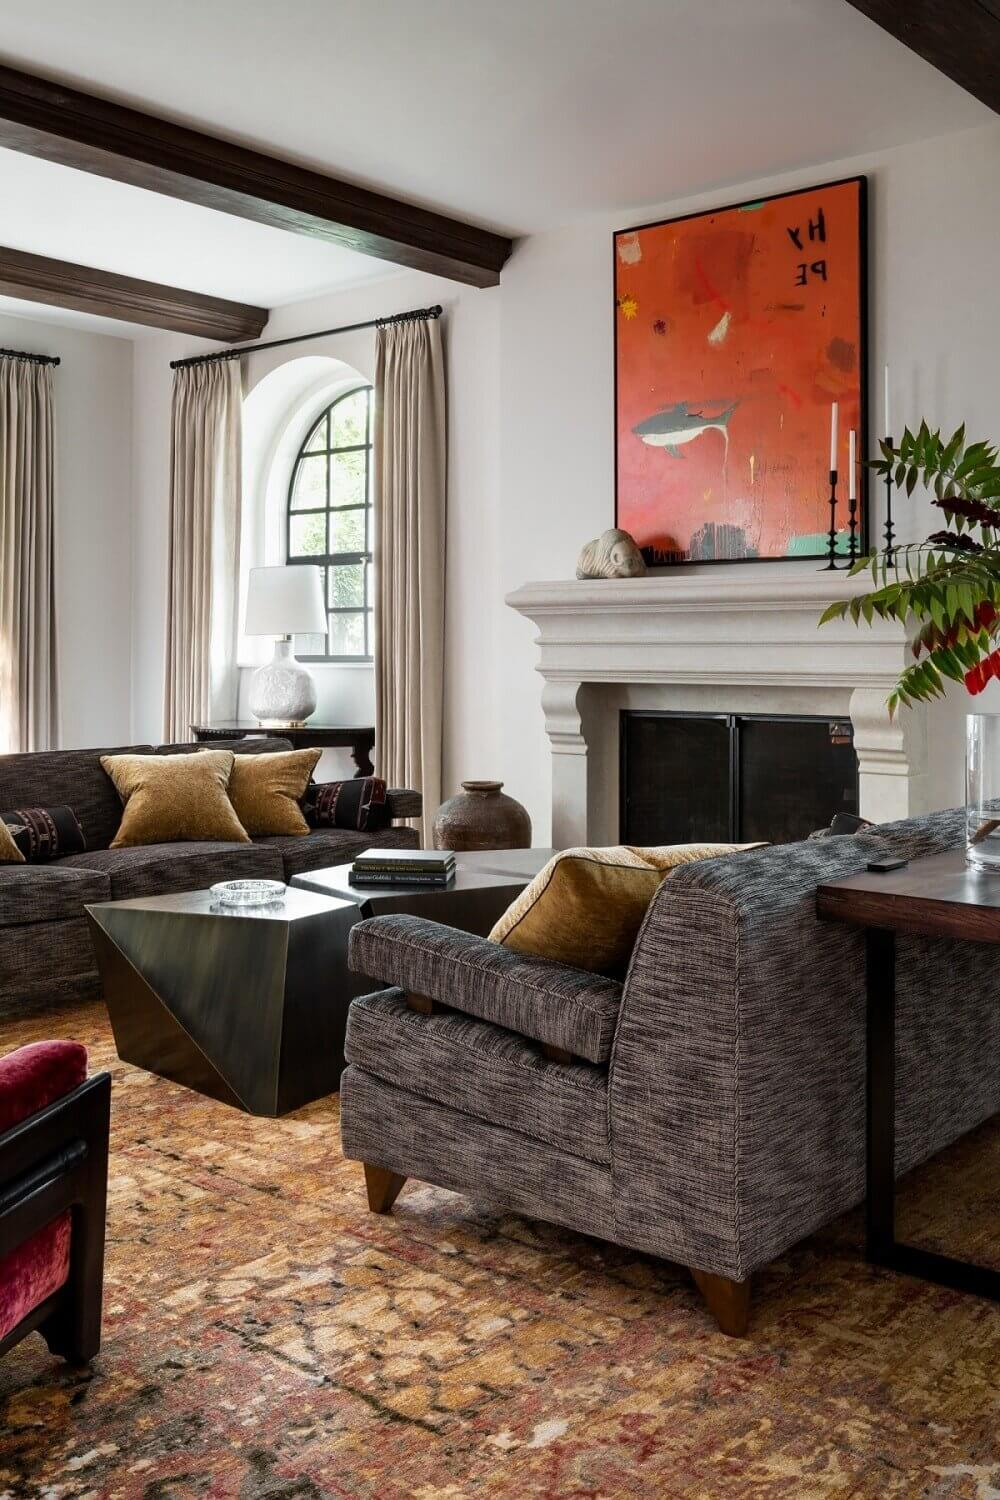 1930s-spanish-style-home-seattle-lionel-pries-nordroom